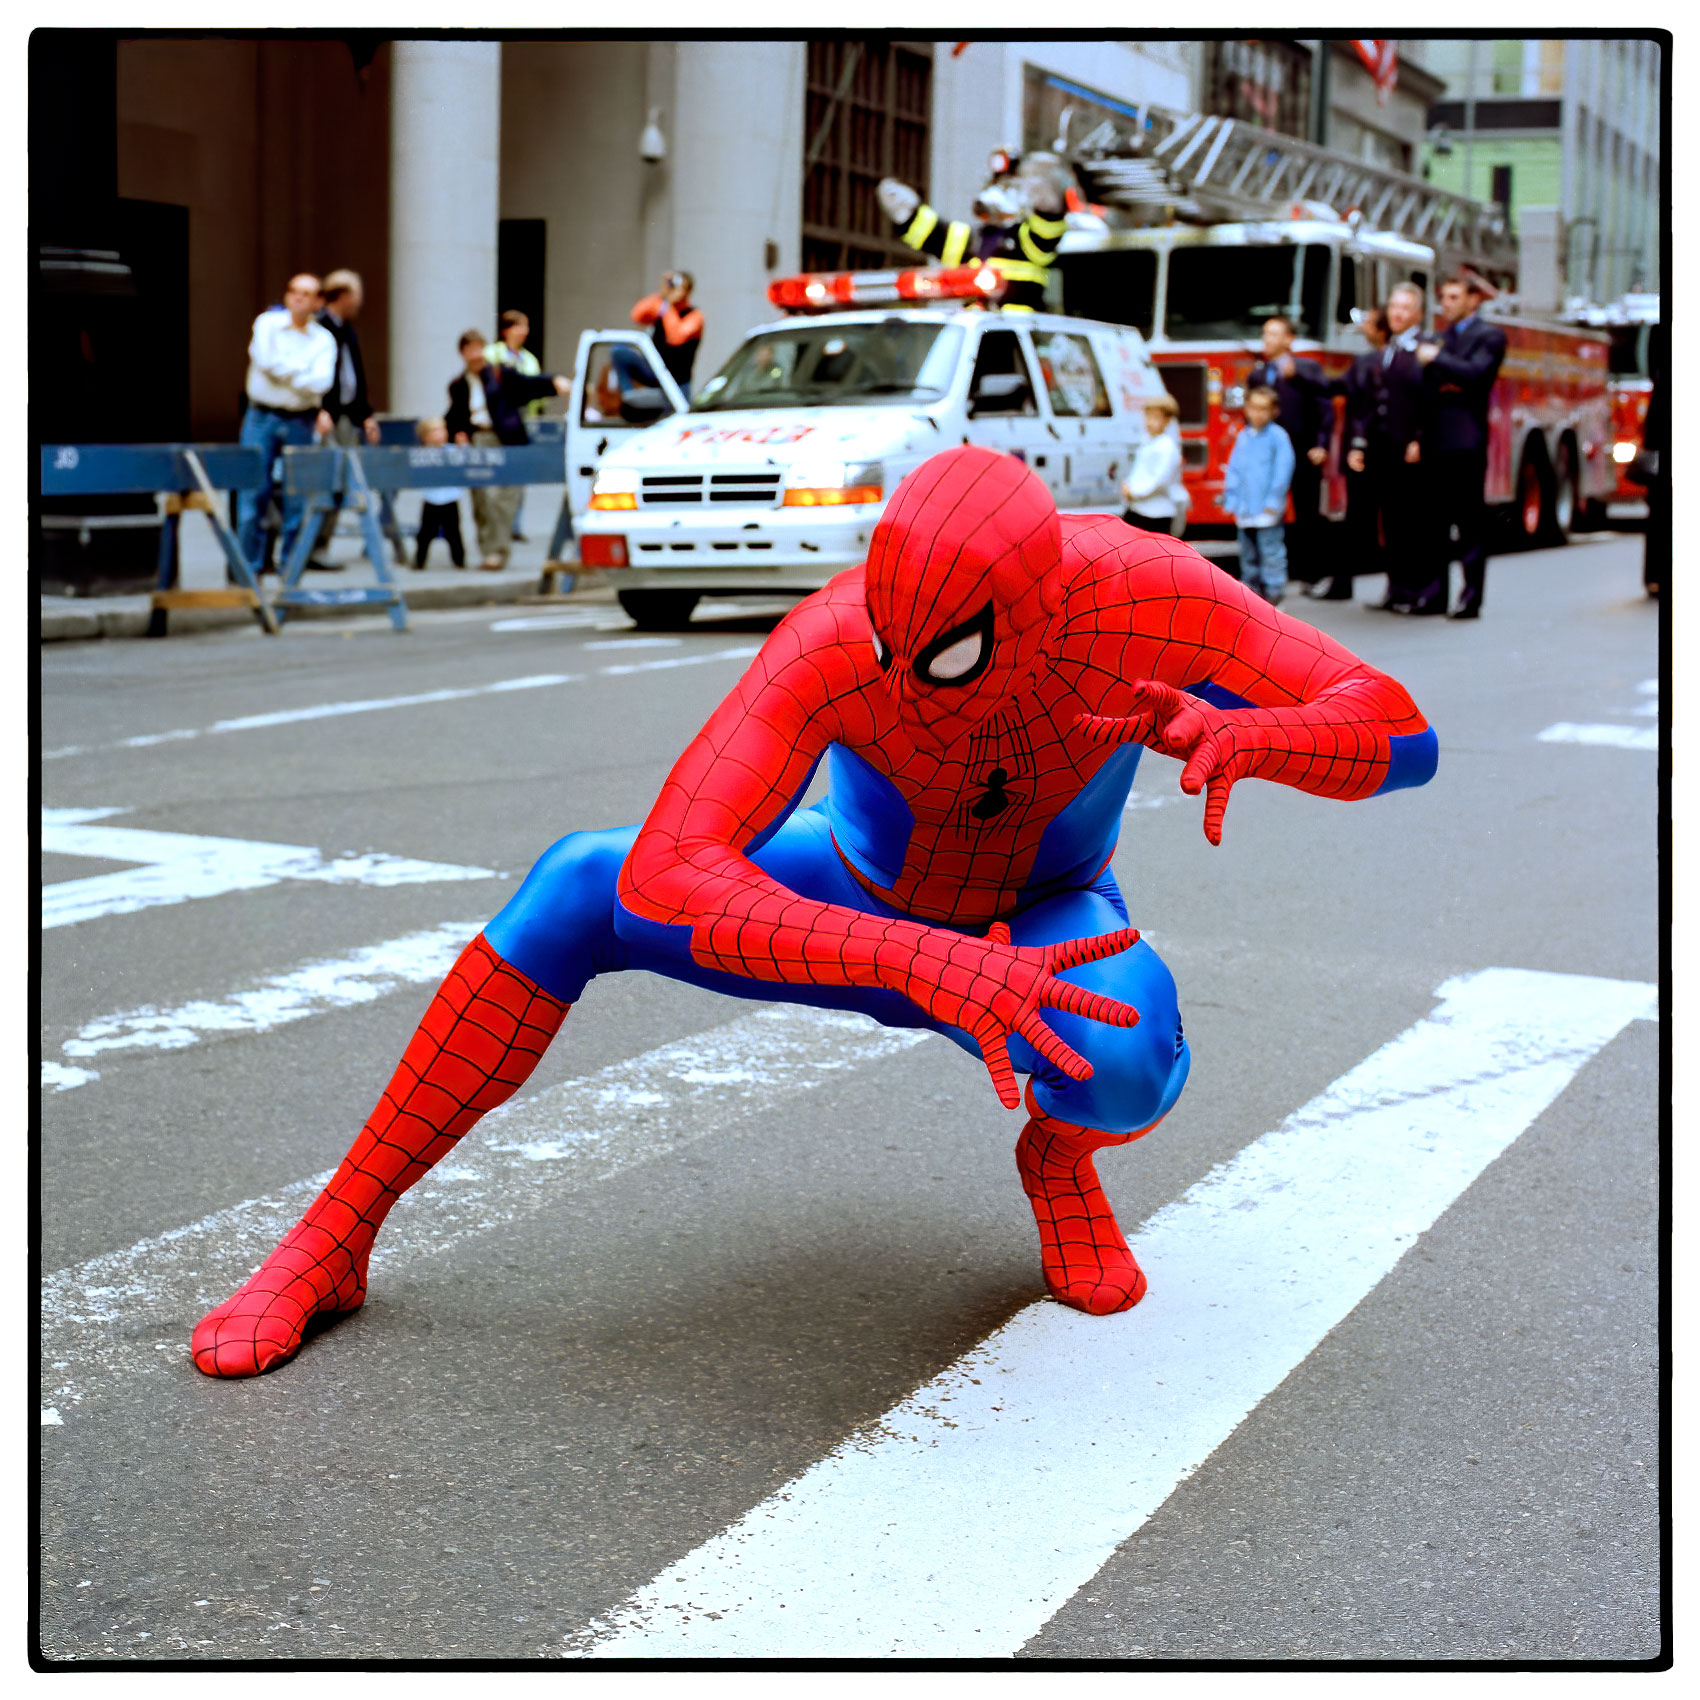 a-man-dressed-a-spiderman-poses-for-a-photo-on-the-streets-of-new-york-city